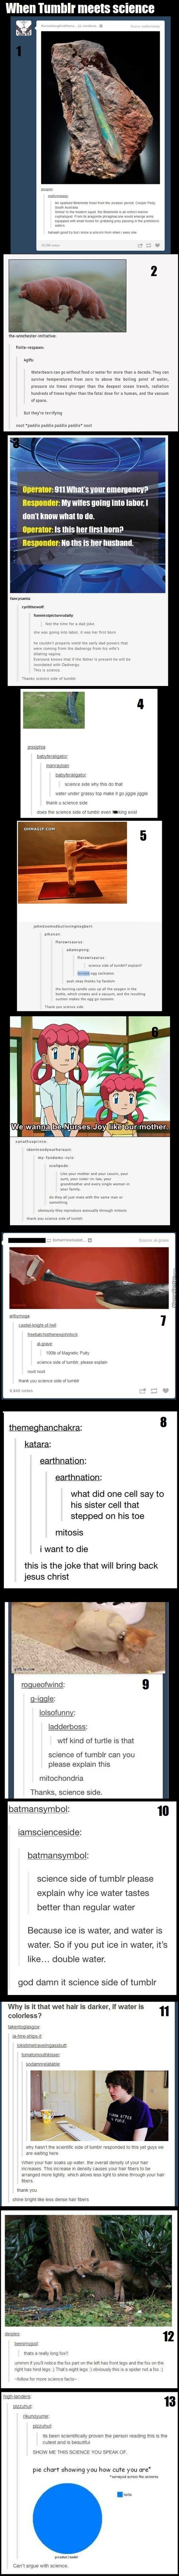 When Tumblr Meets Science